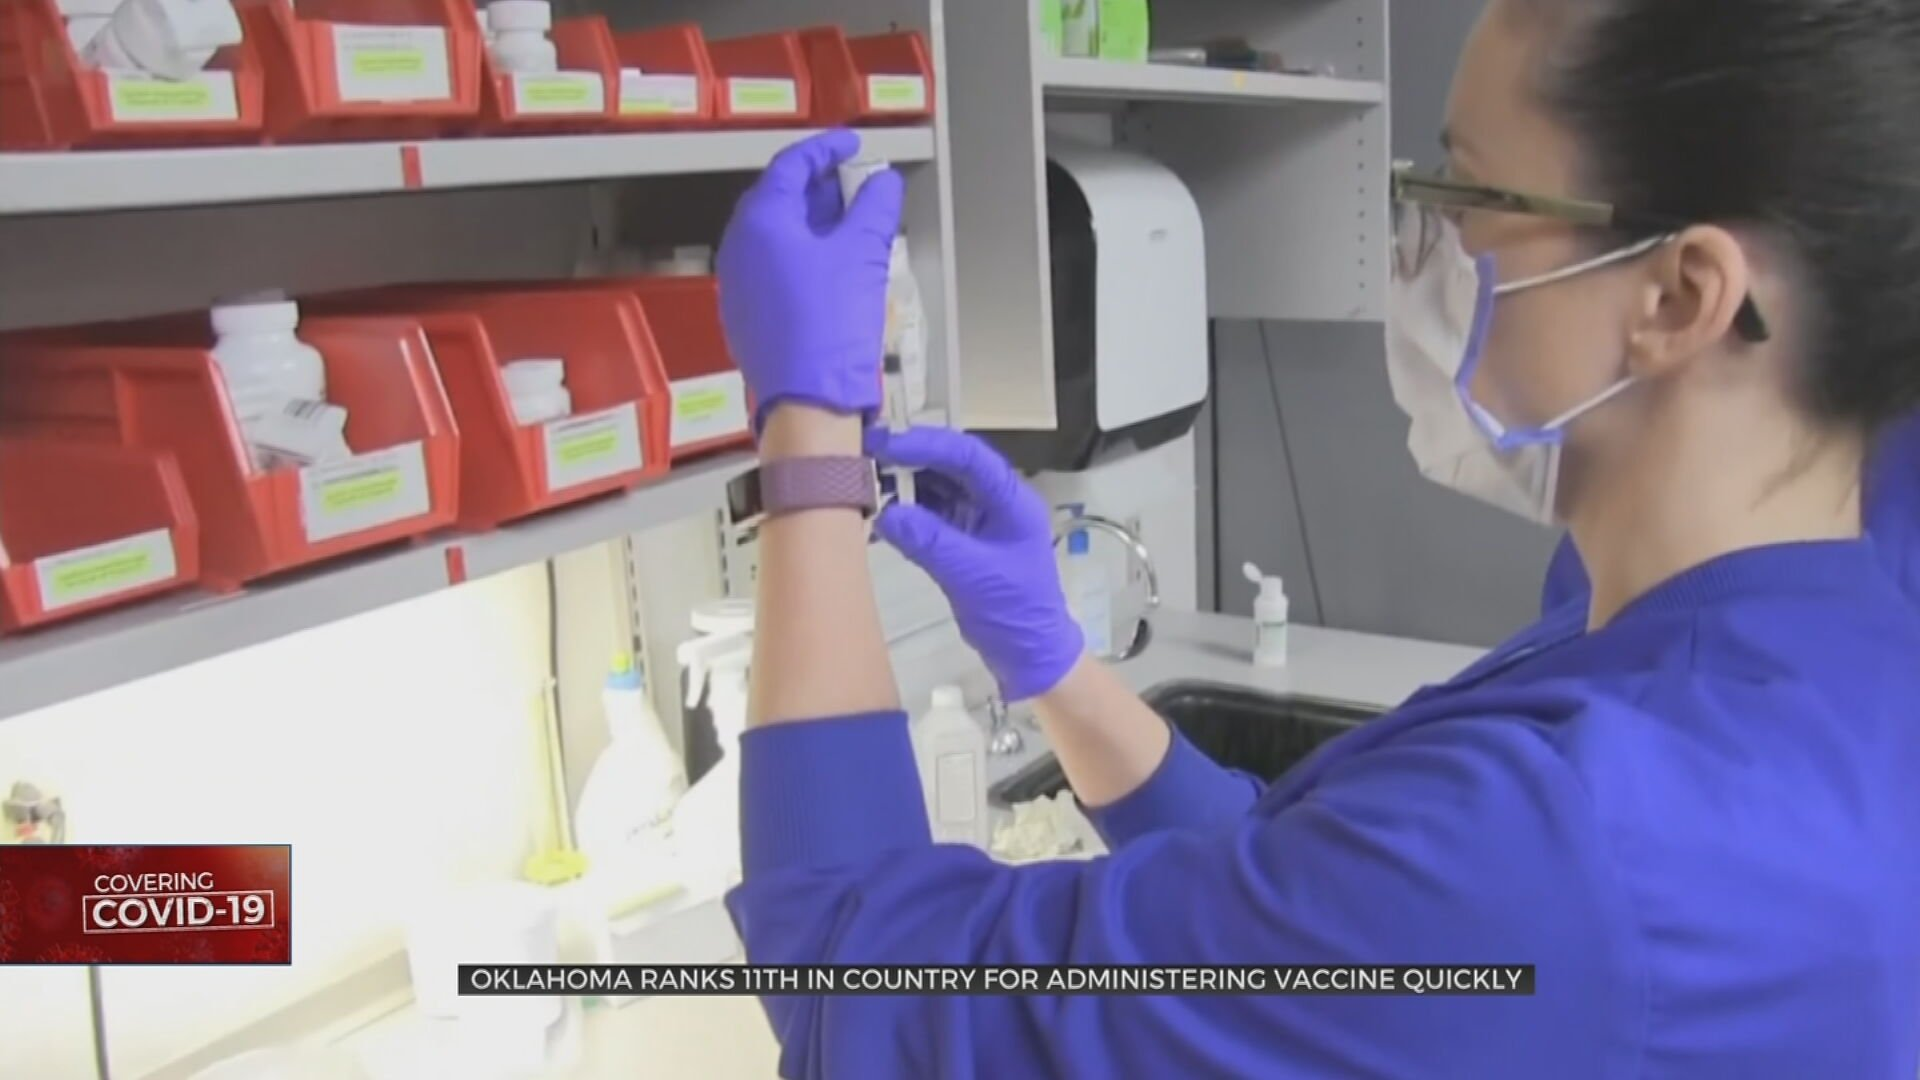 Oklahoma Sees Increase In COVID-19 Cases; Ranks 11th Nationally In Administering Vaccine Quickly